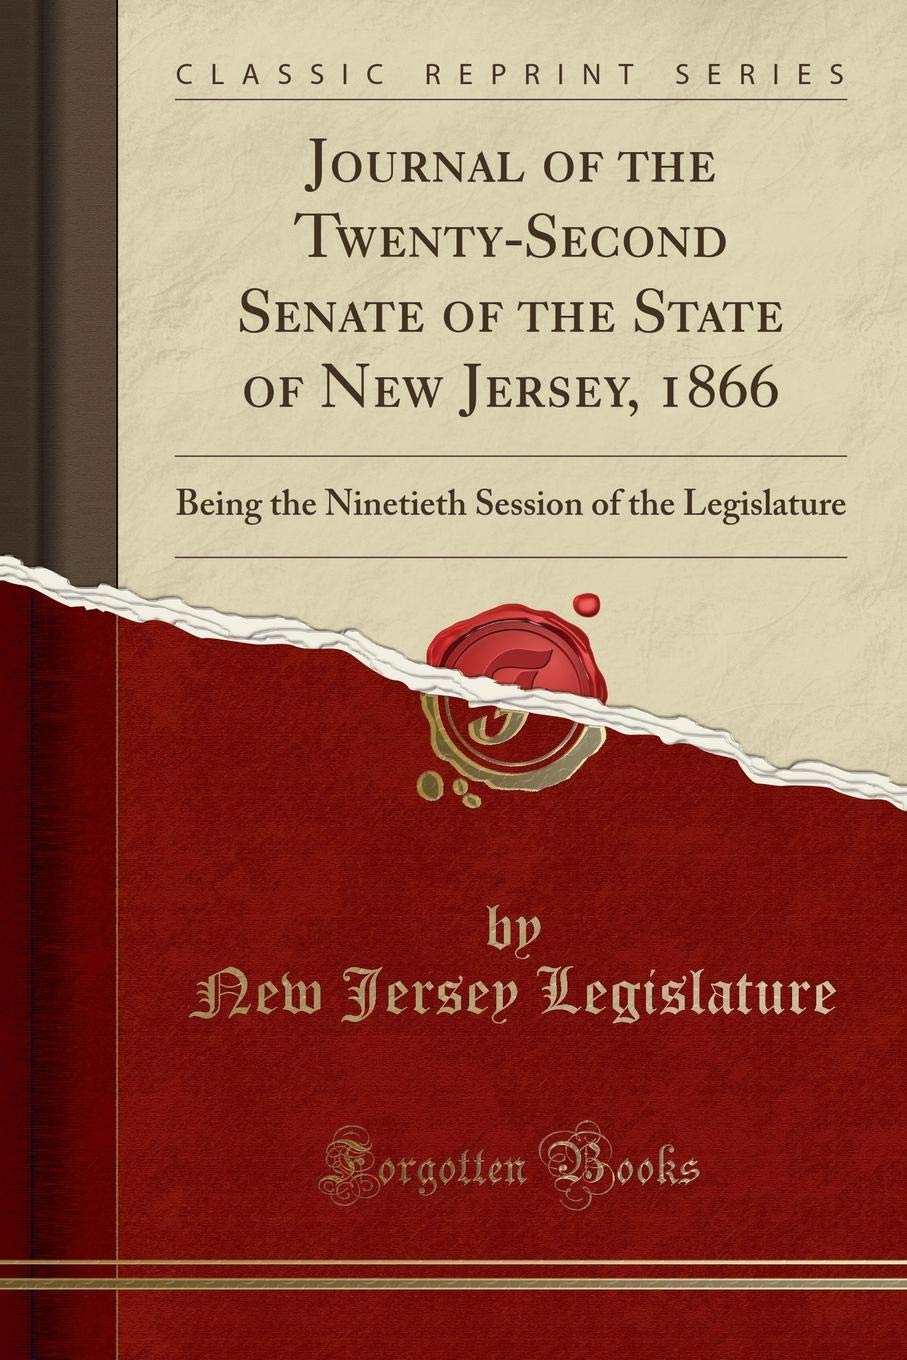 Read Online Journal of the Twenty-Second Senate of the State of New Jersey, 1866: Being the Ninetieth Session of the Legislature (Classic Reprint) ebook